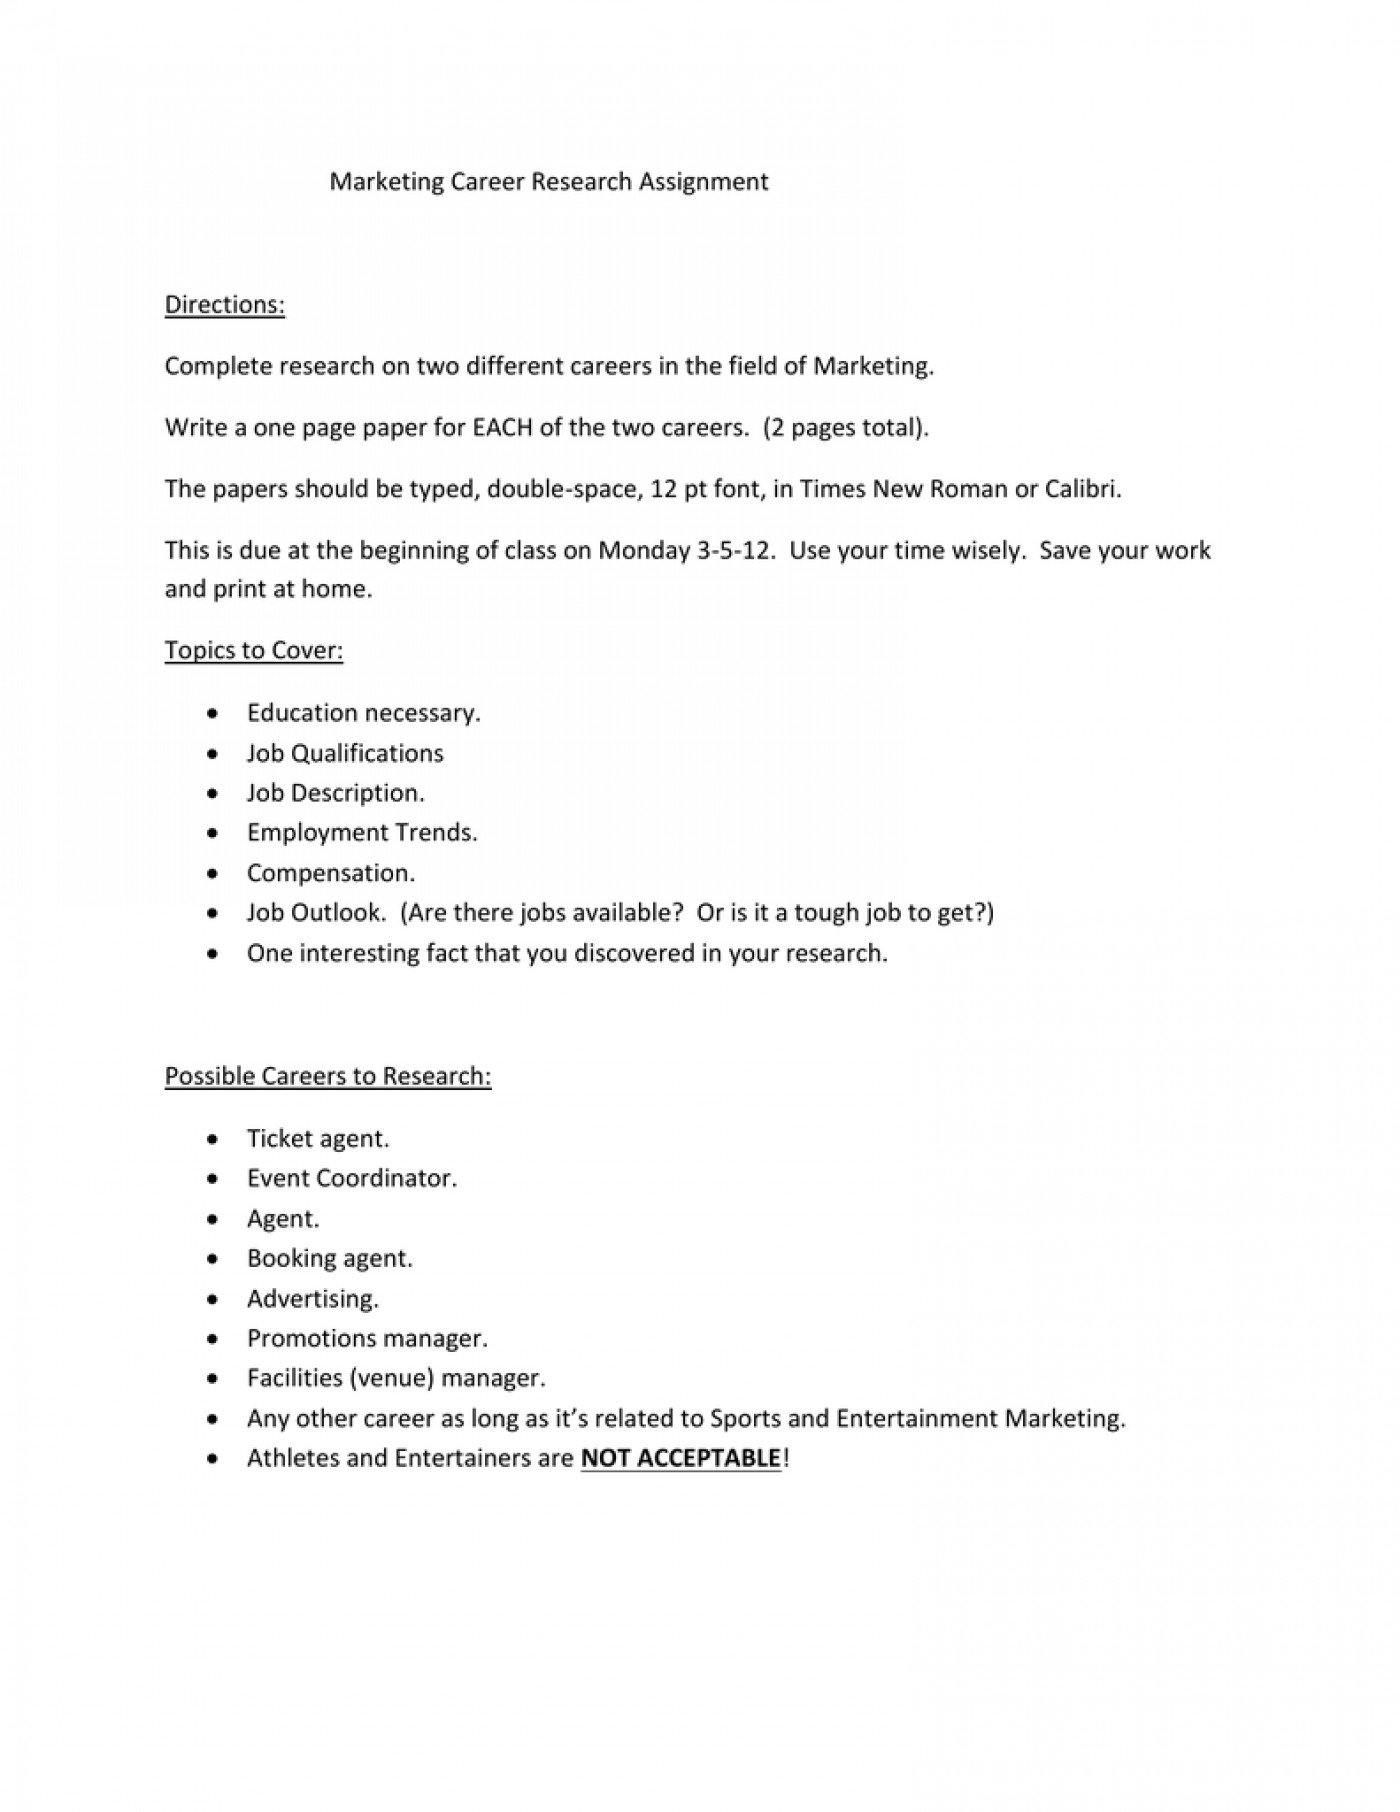 012 Research Paper Papers On Careers 006189065 1 Remarkable Example Of A Career Choice Examples 1400